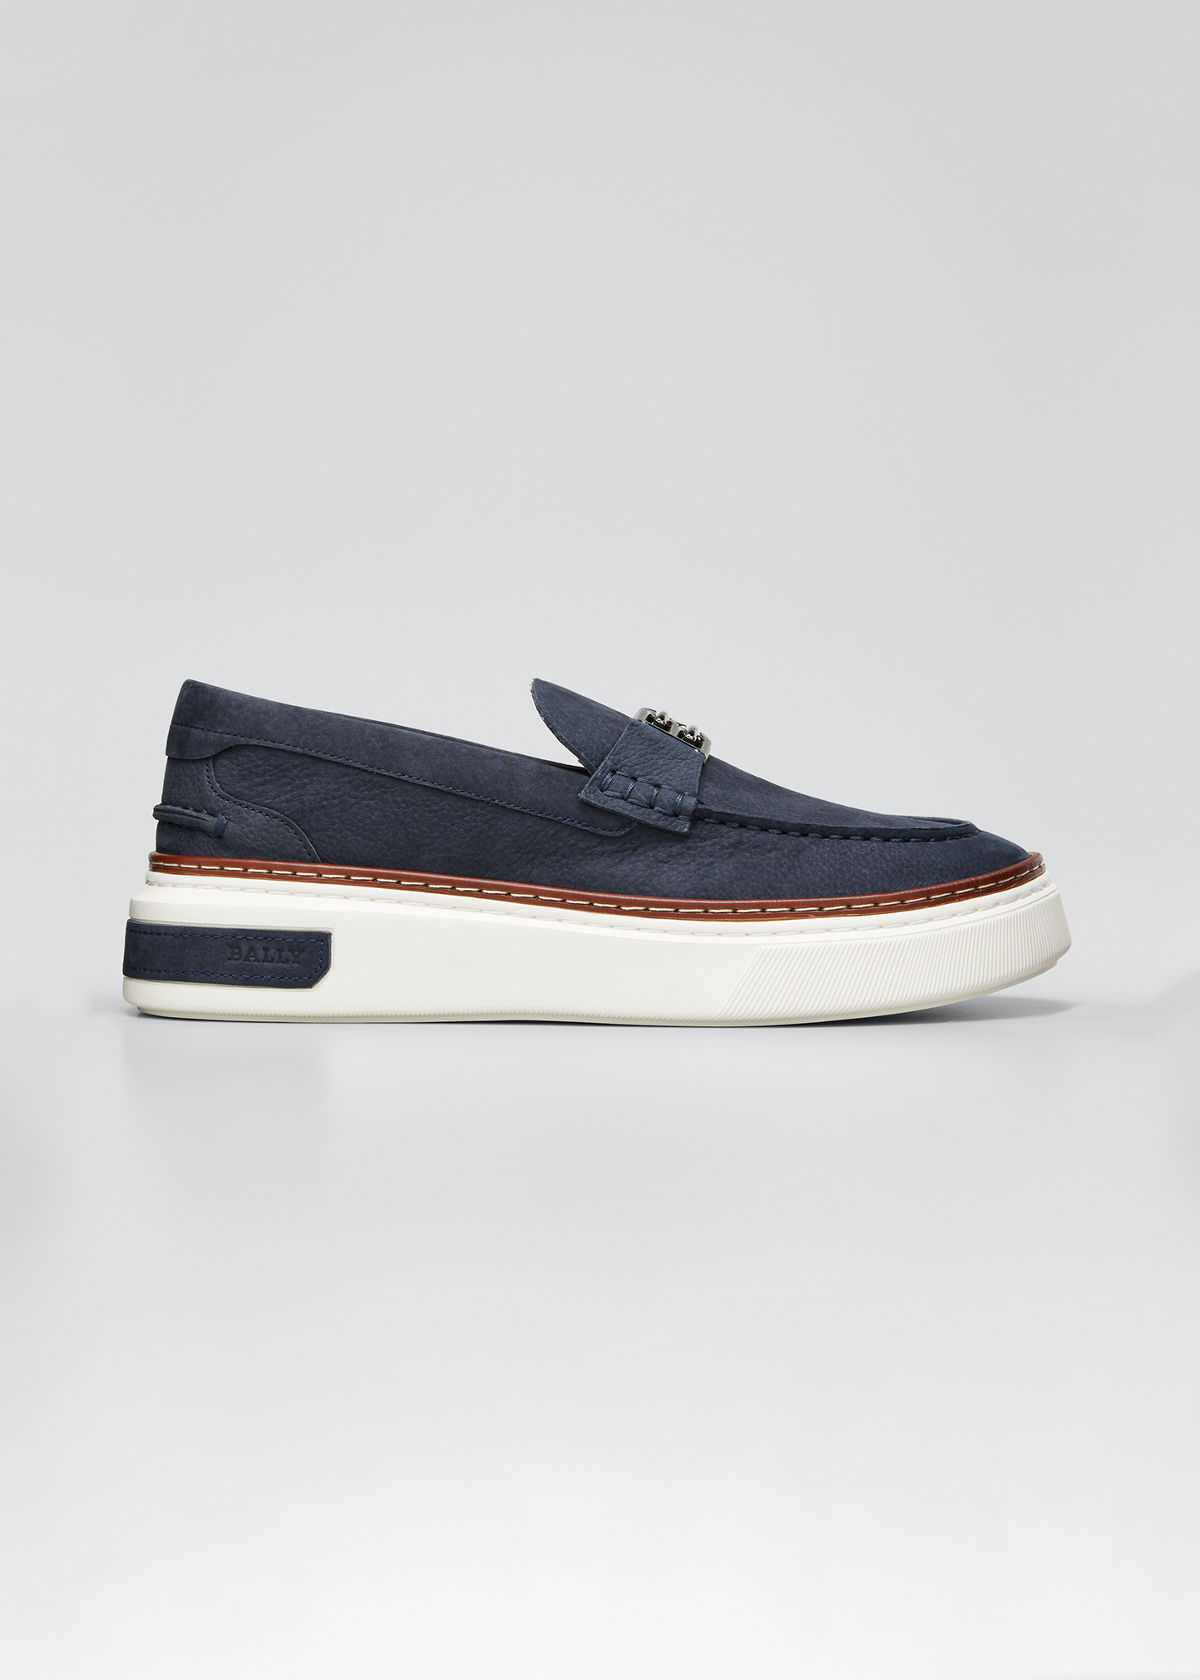 Bally MEN'S MAICOL 16 NUBUCK FLATFORM SLIP-ONS WITH B-CHAIN